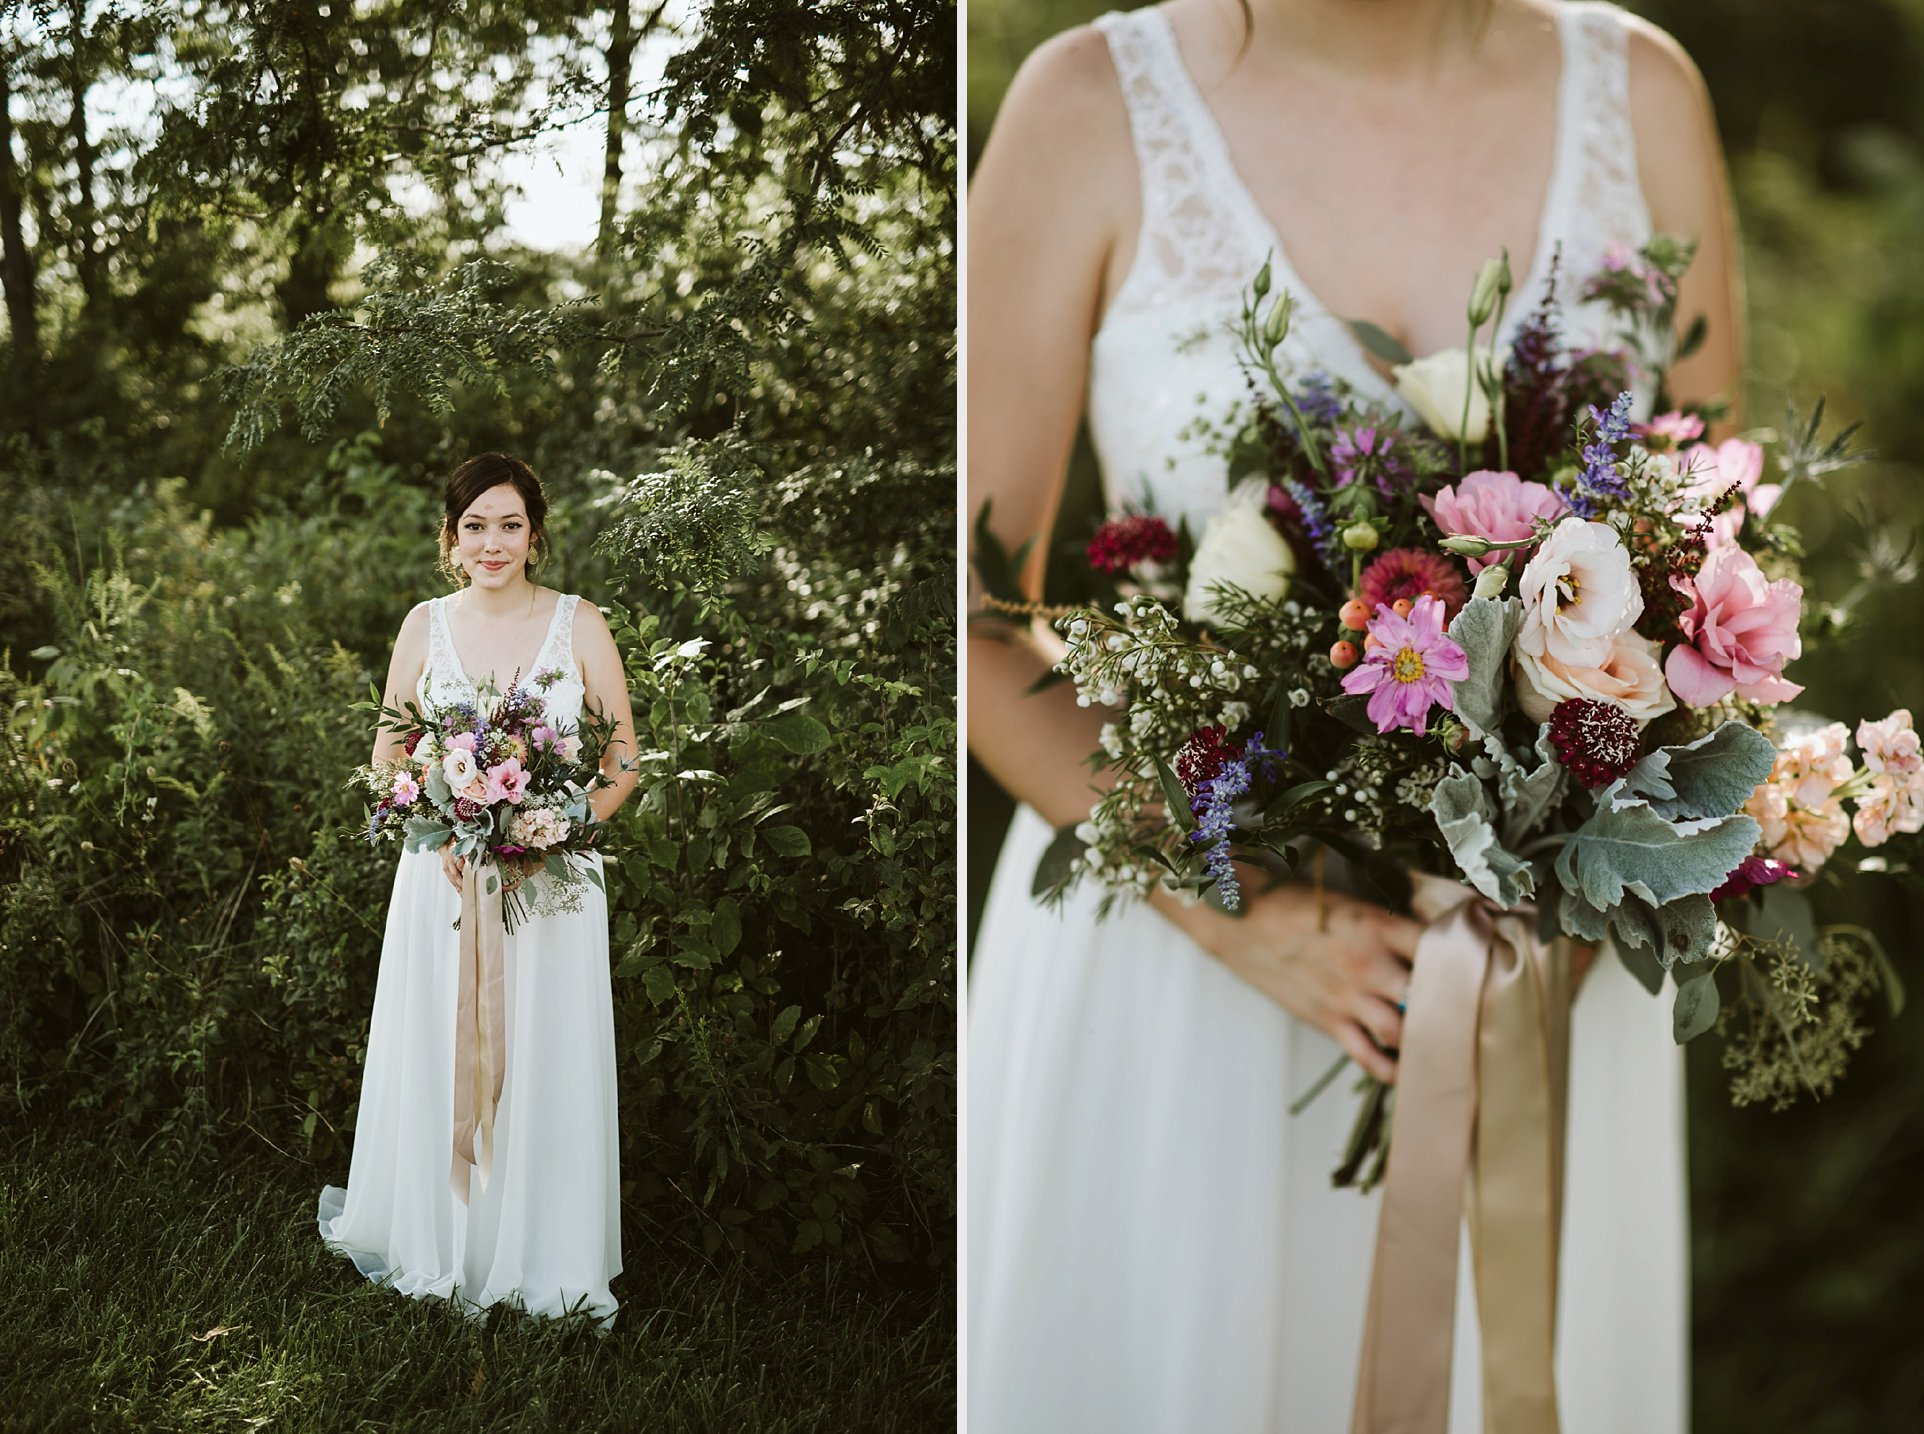 ohio-wedding-photographer-boho-garden-floral-wedding-018